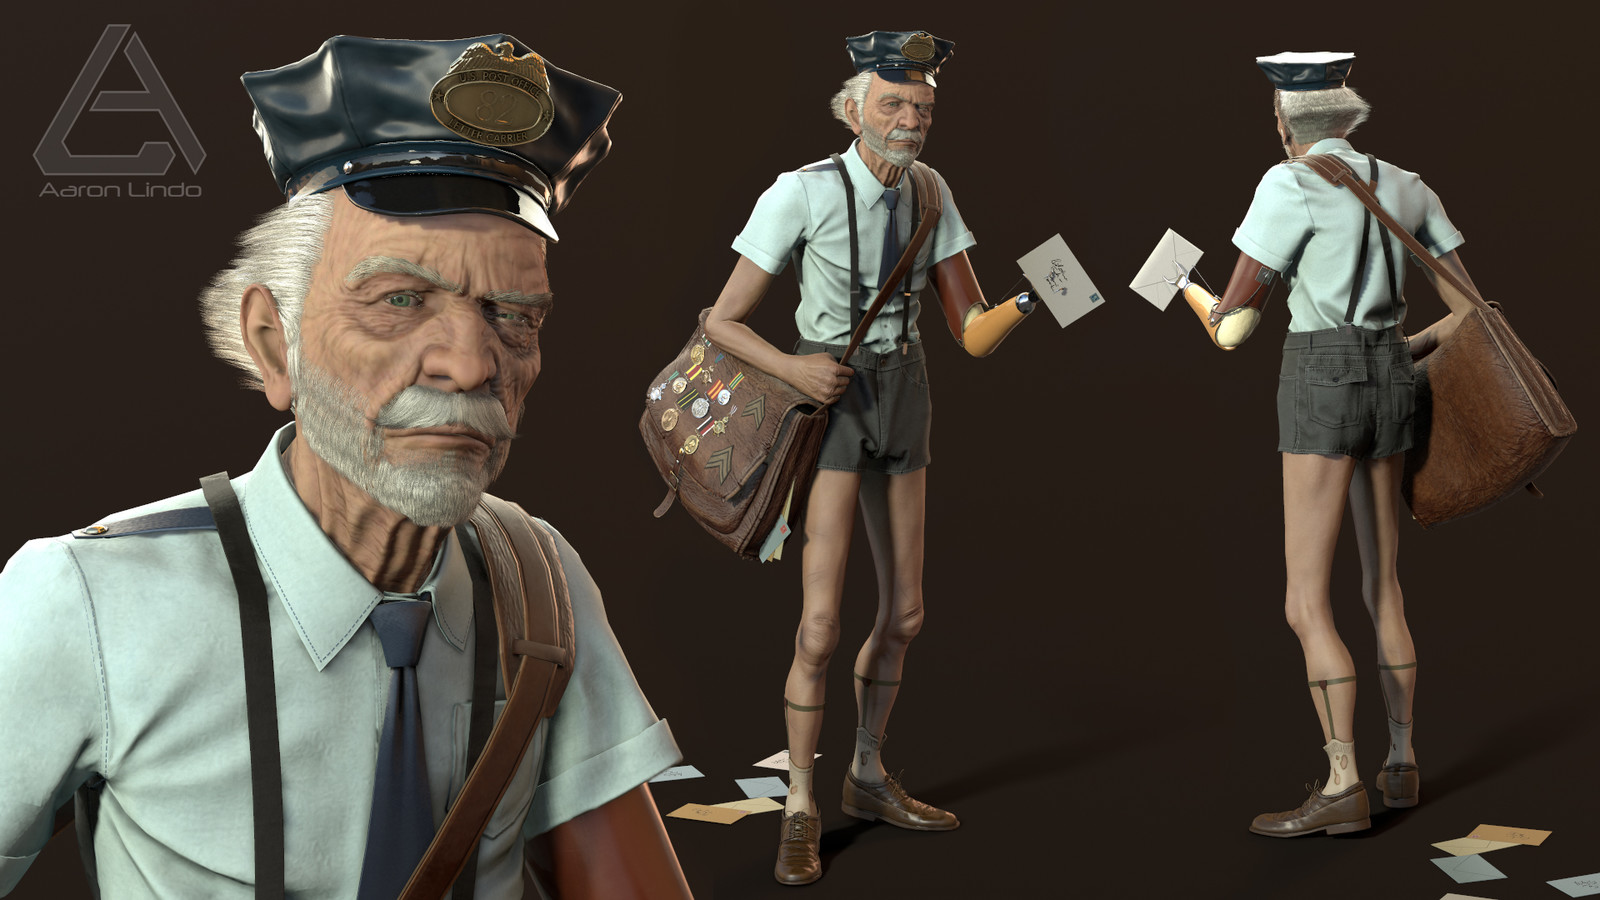 Real-time character rendered in Marmoset Toolbag 3